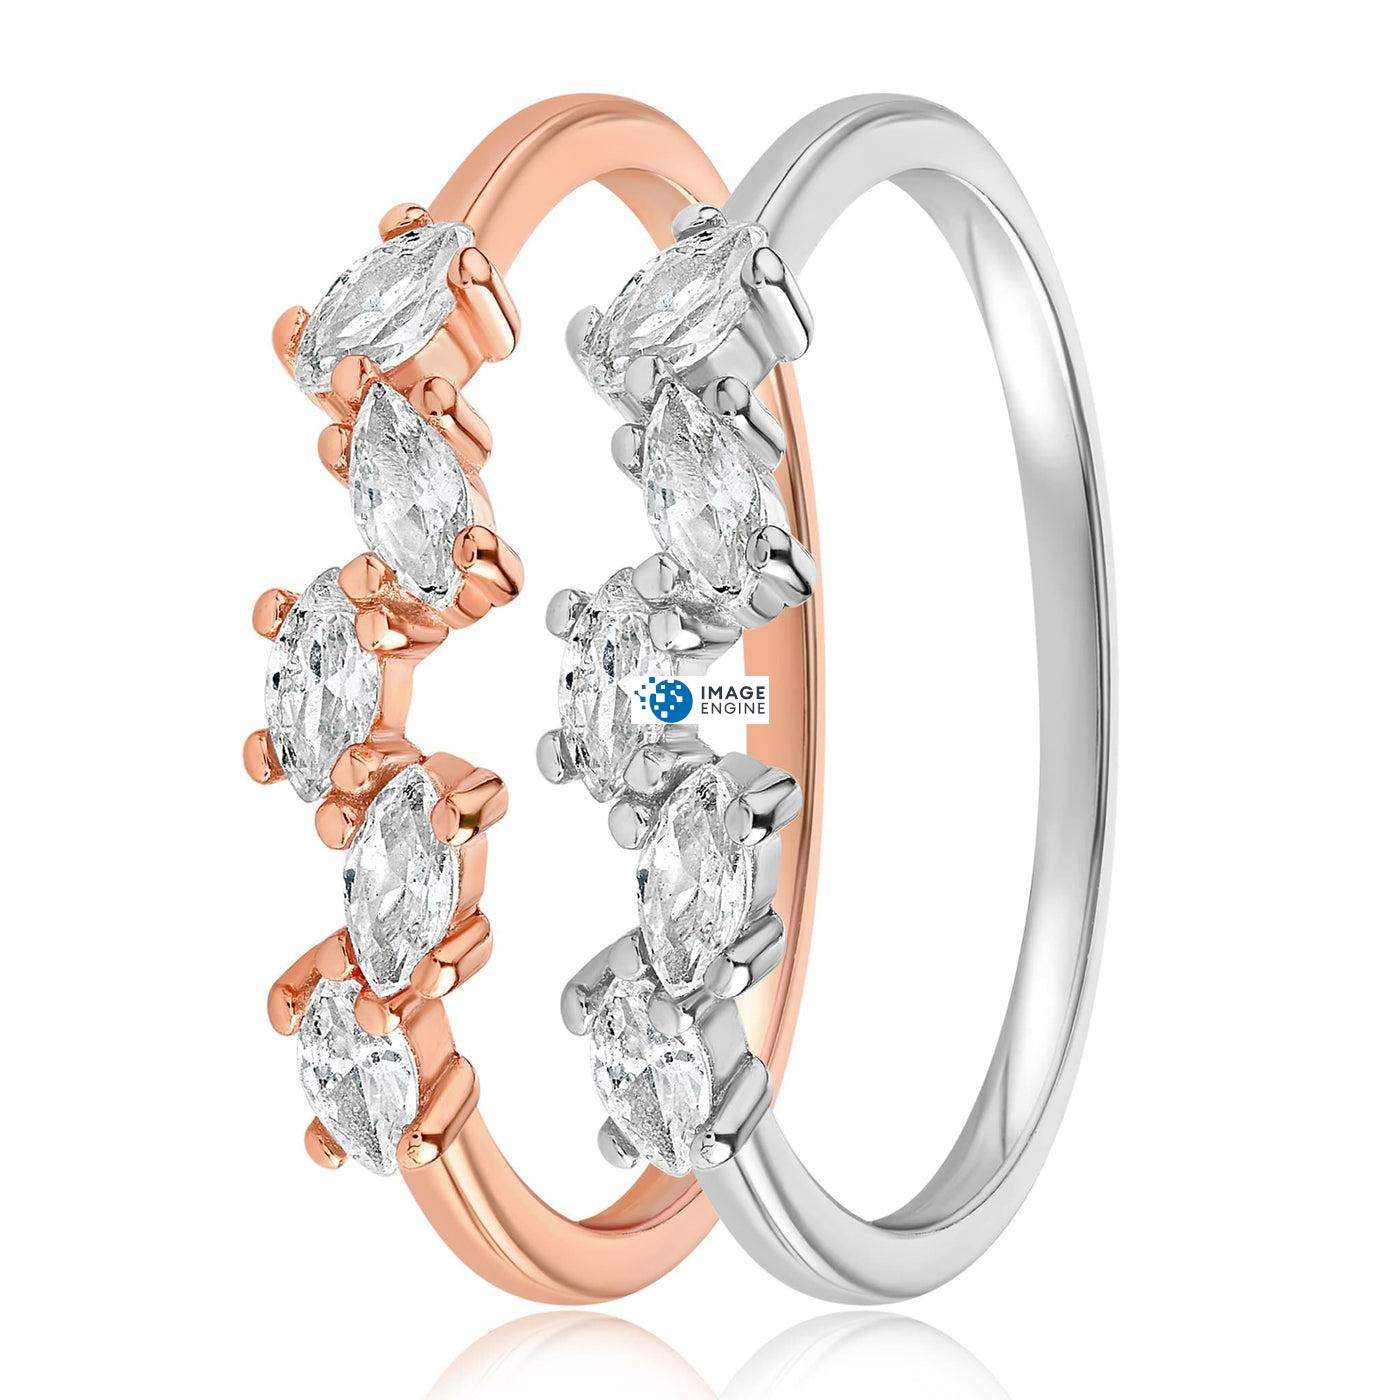 Genna Round Cut Ring - Side by Side - 925 Sterling Silver and 18K Rose Gold Vermeil